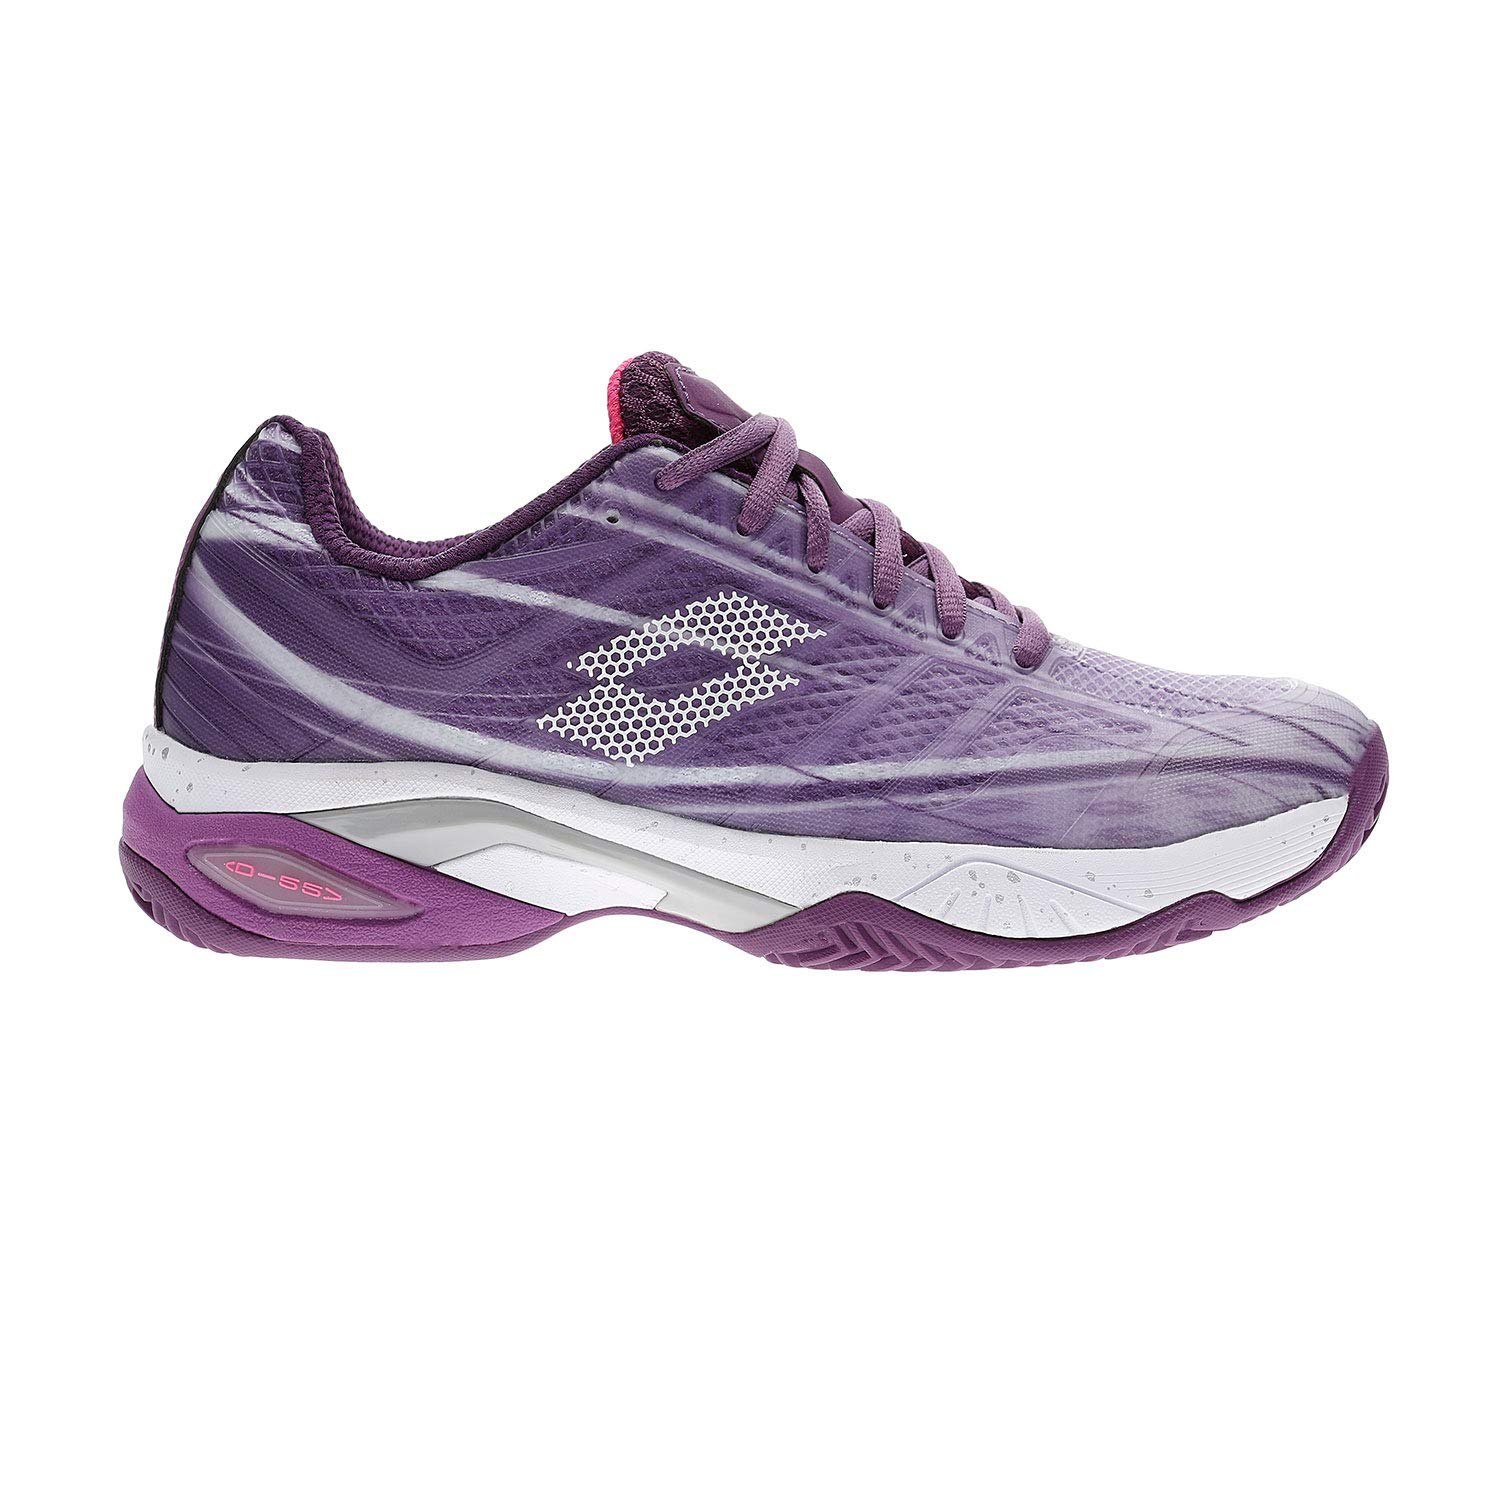 Zapatillas Lotto Mirage 300 Cly W Tenis-Padel nº40: Amazon.es ...